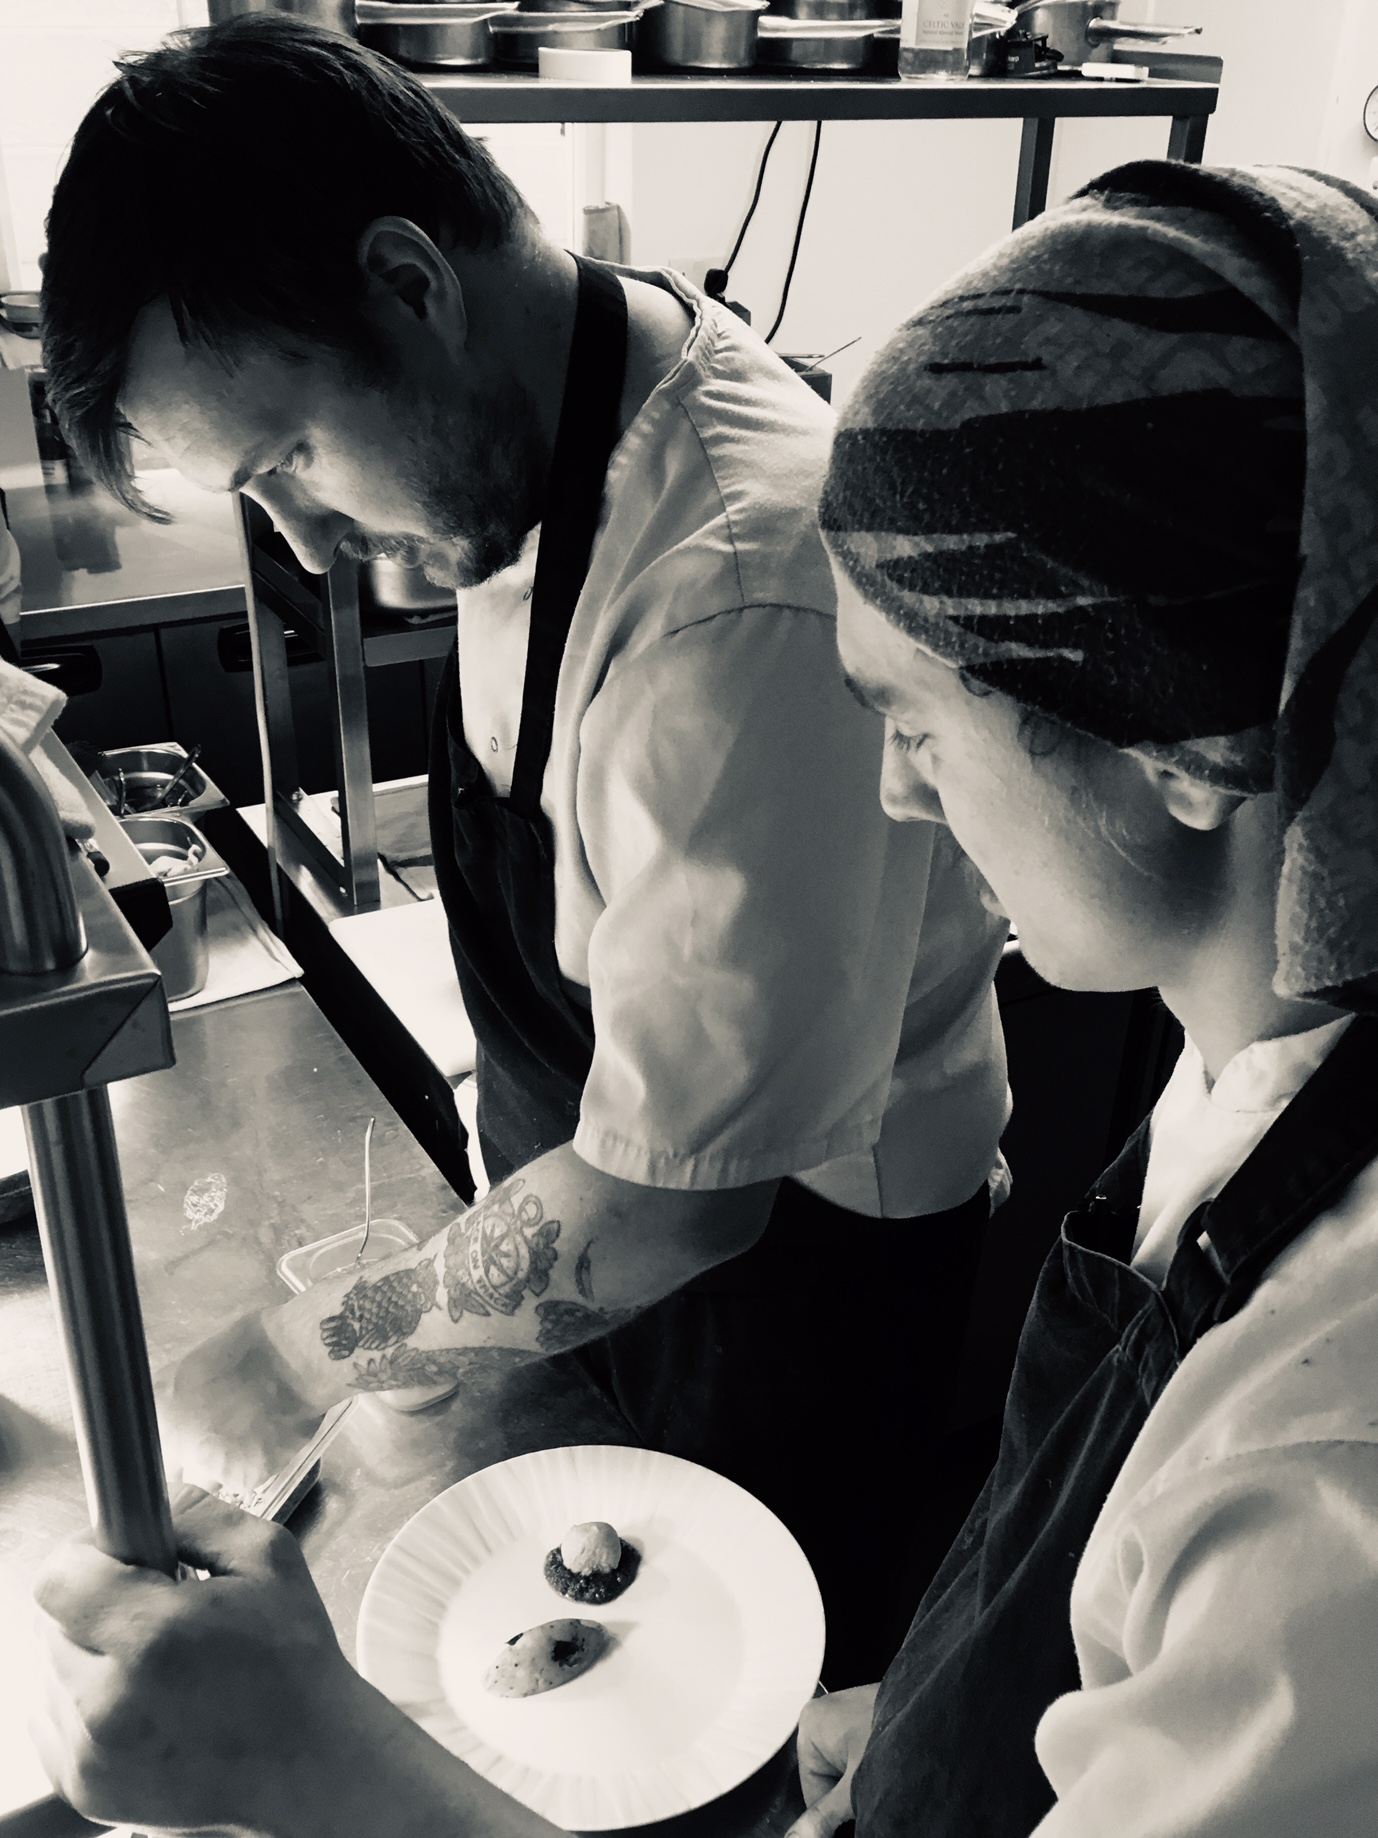 THe Kitchen Team - Dan's hand picked team are passionate, skilled and enthusiastic about food.Sandro, the Sous Chef, has trained from a young age at his dads restaurant. His love for food (especially Indian cuisine) shines through in some of our dishes.Shea ……..